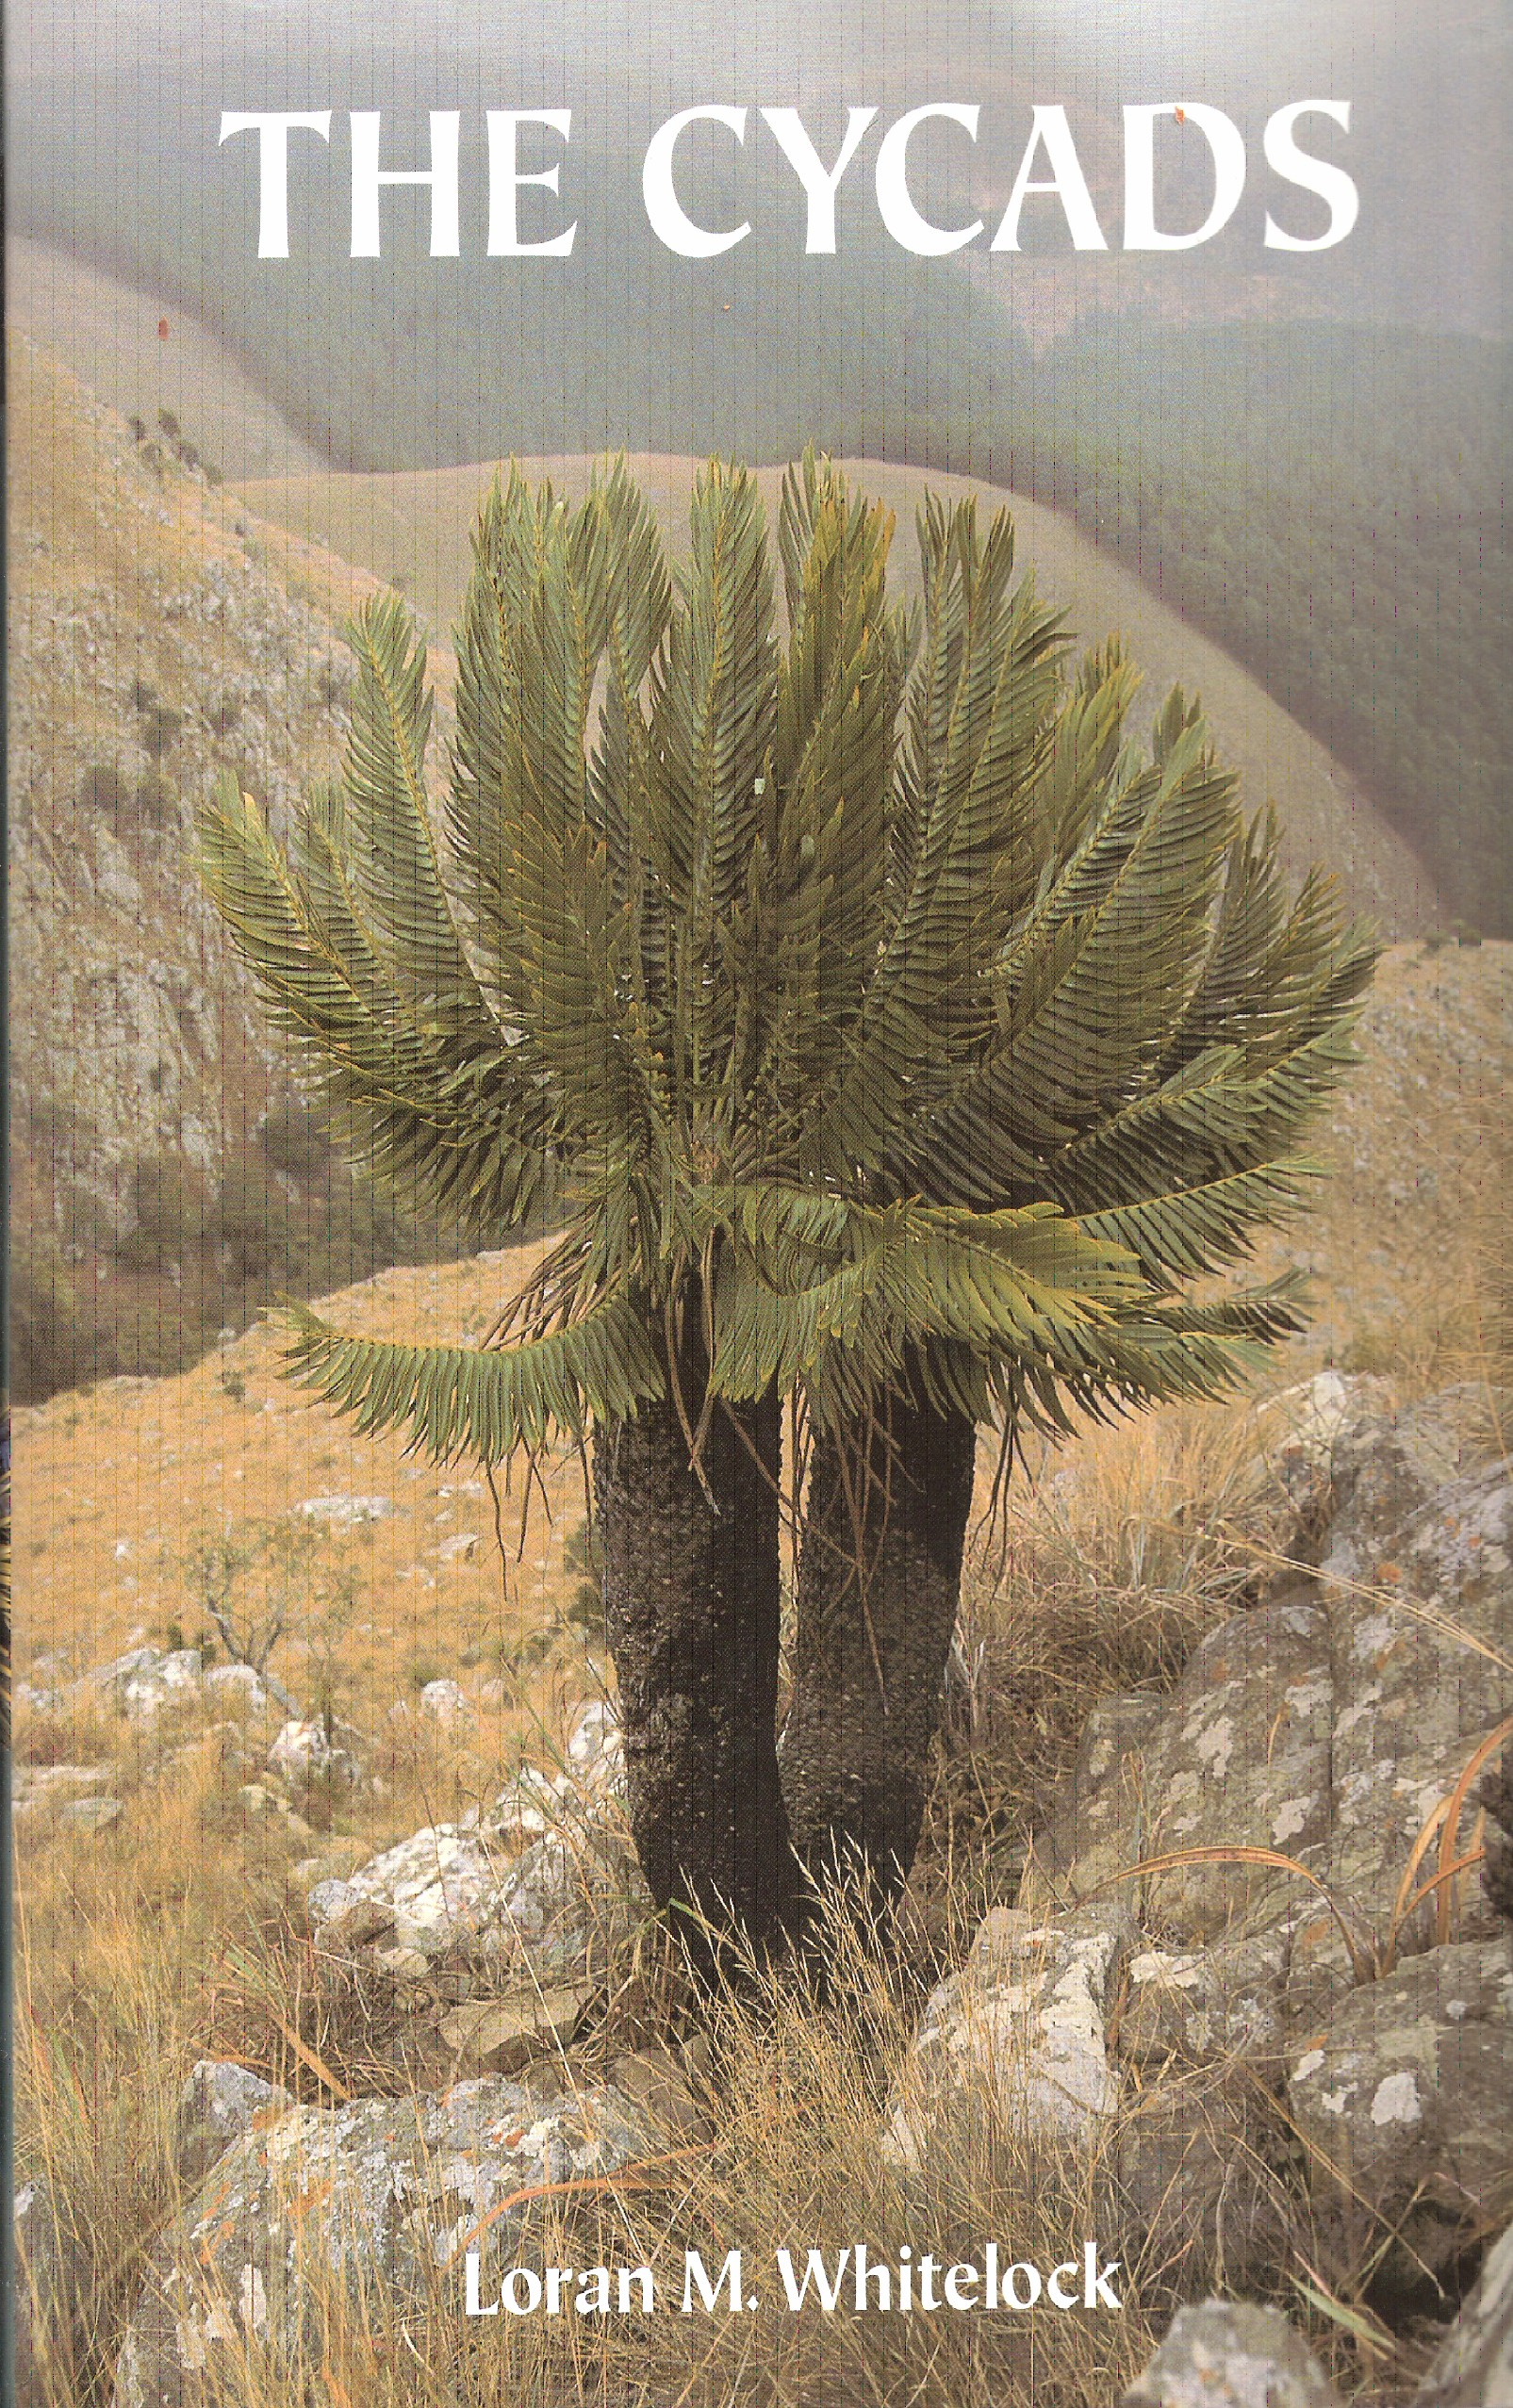 The Cycads